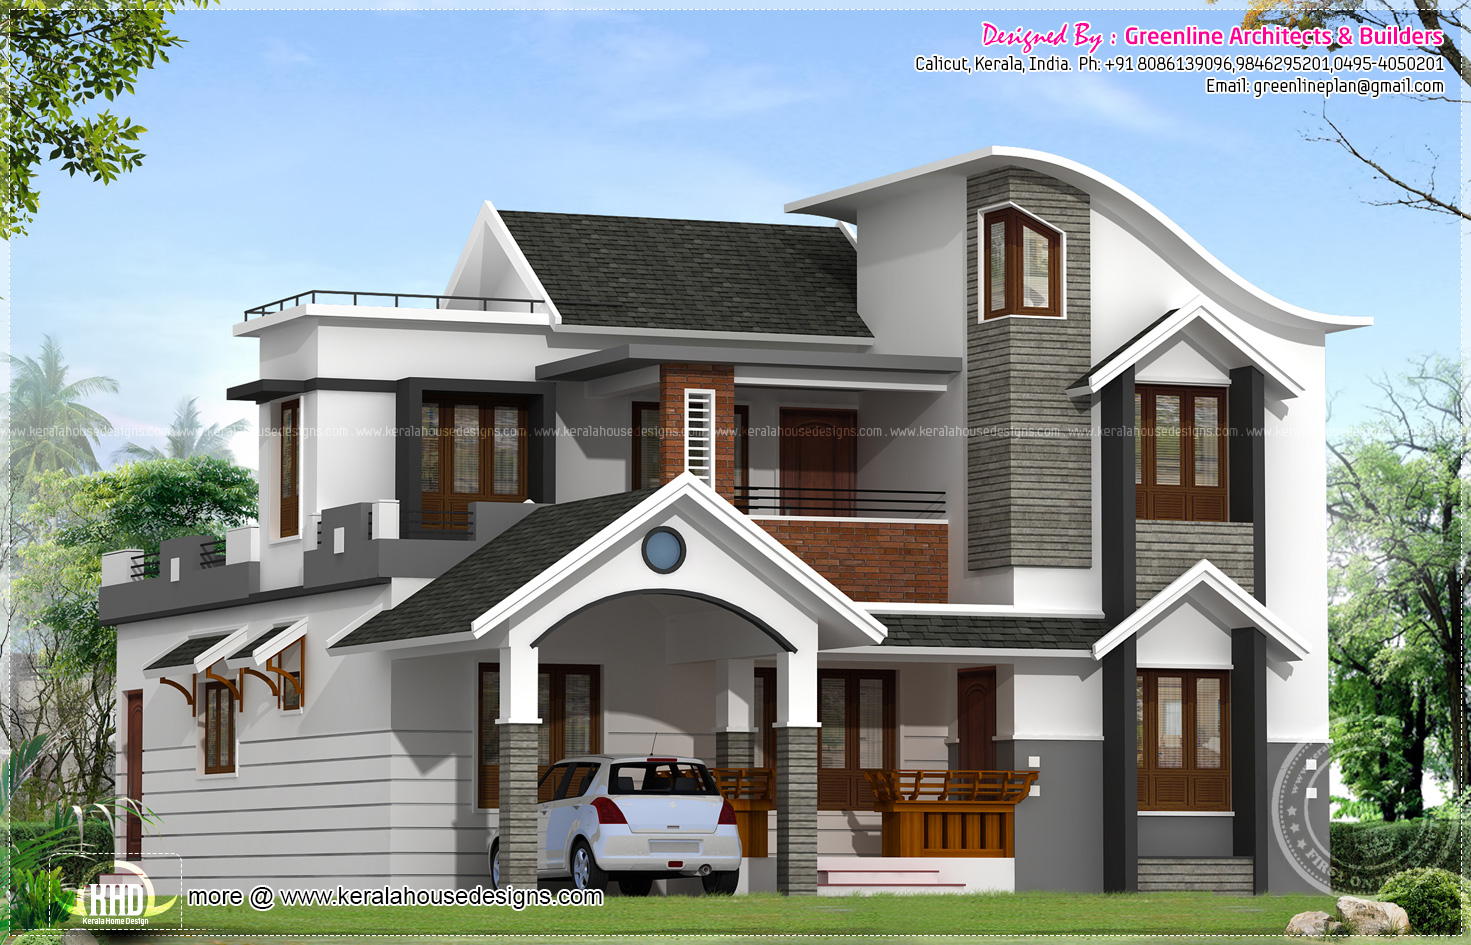 May 2013 kerala home design and floor plans for Kerala homes photo gallery